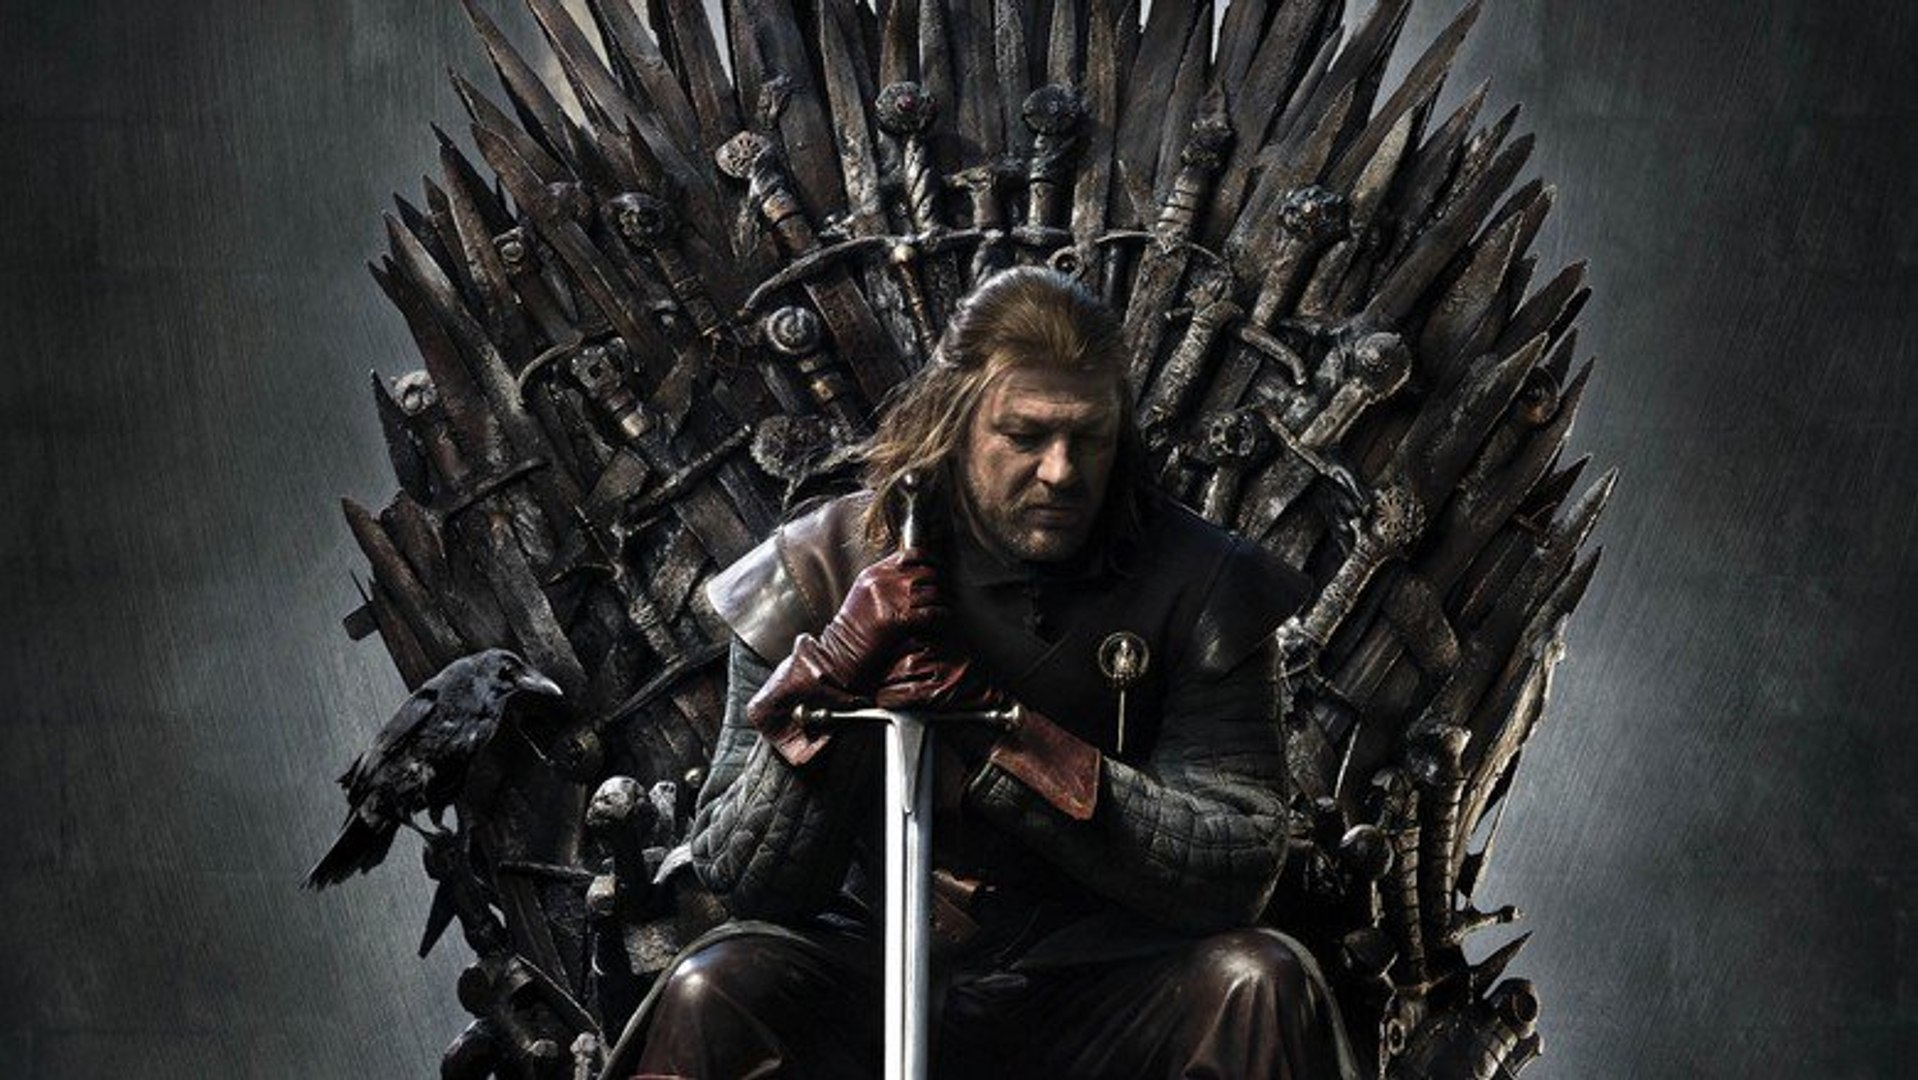 Game Of Thrones S6e6 Blood Of My Blood Full Episodes Free Online Video Dailymotion